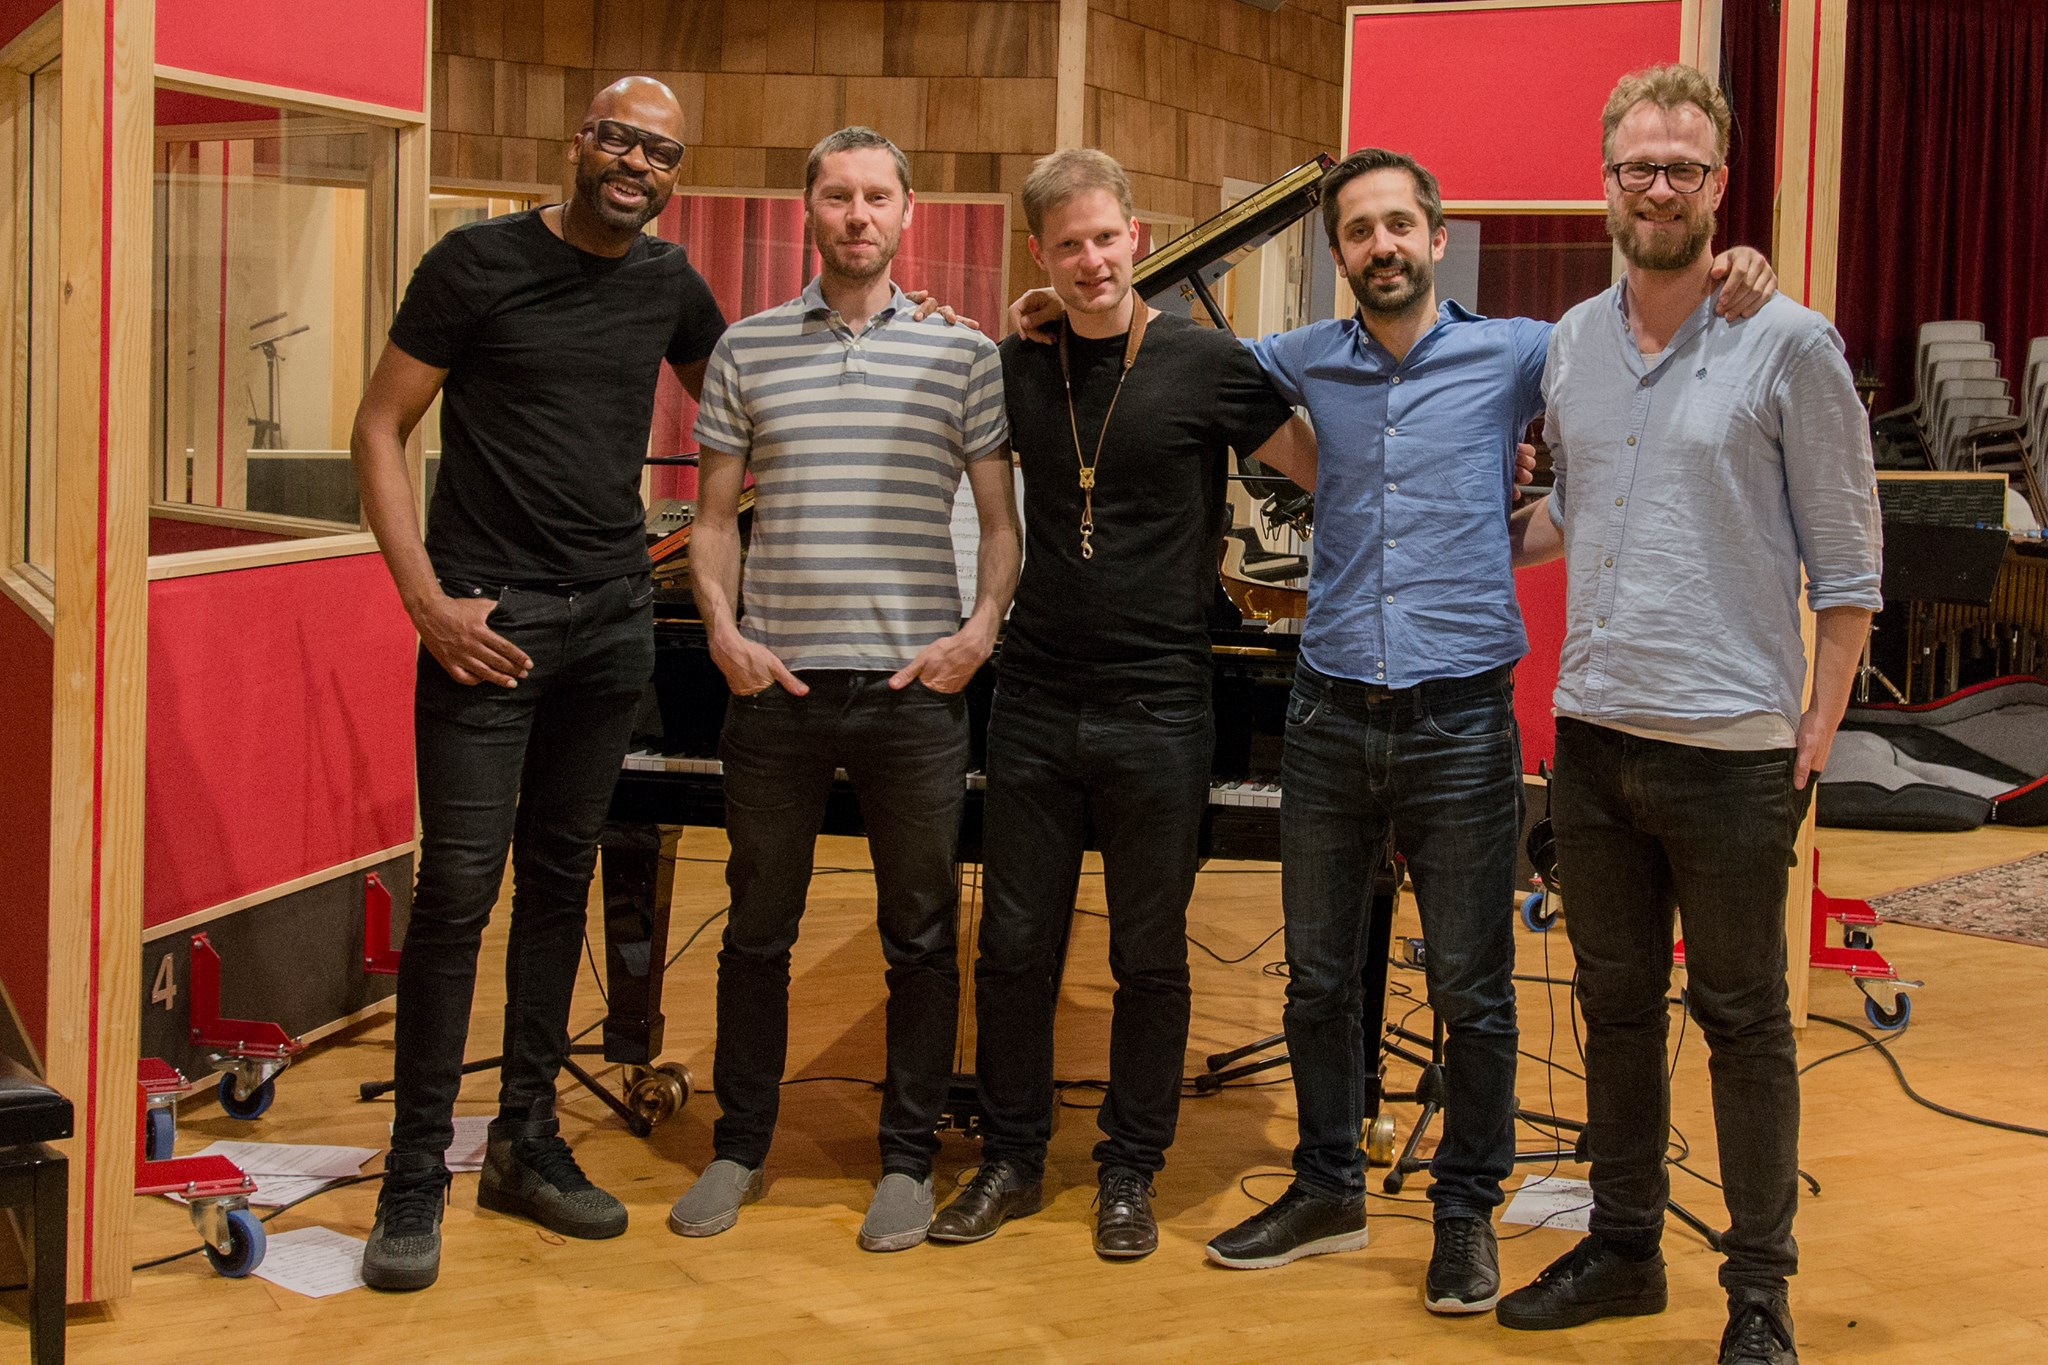 Lubos Soukup Quartet feat Lionel Loueke at the Village recording Studio in Copenhagen Denmark